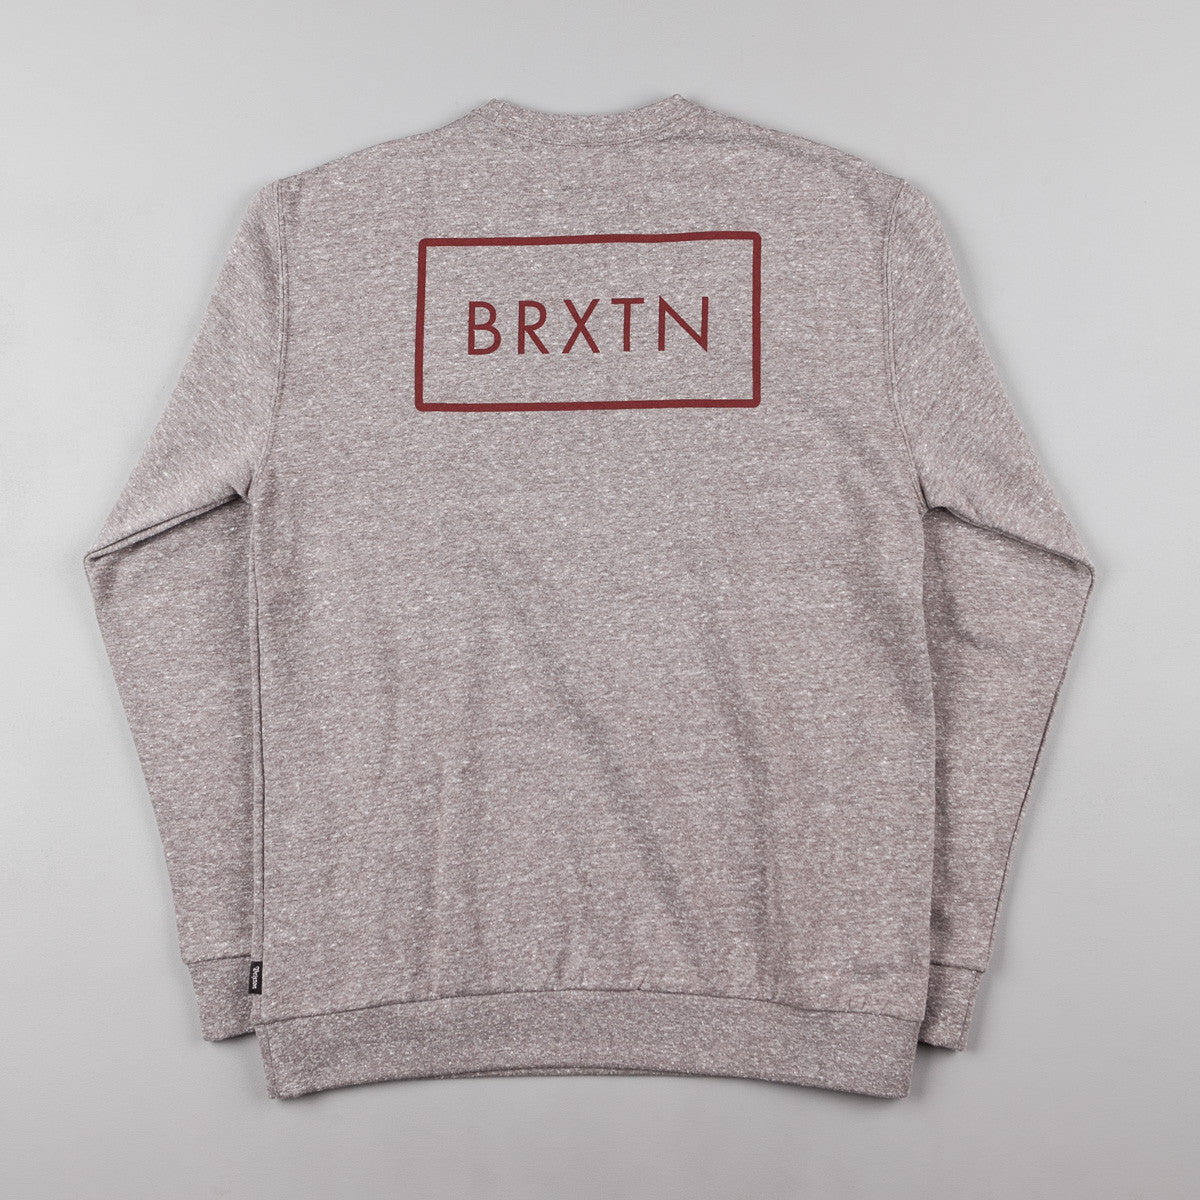 Brixton Rift Crewneck Sweatshirt - Heather Grey